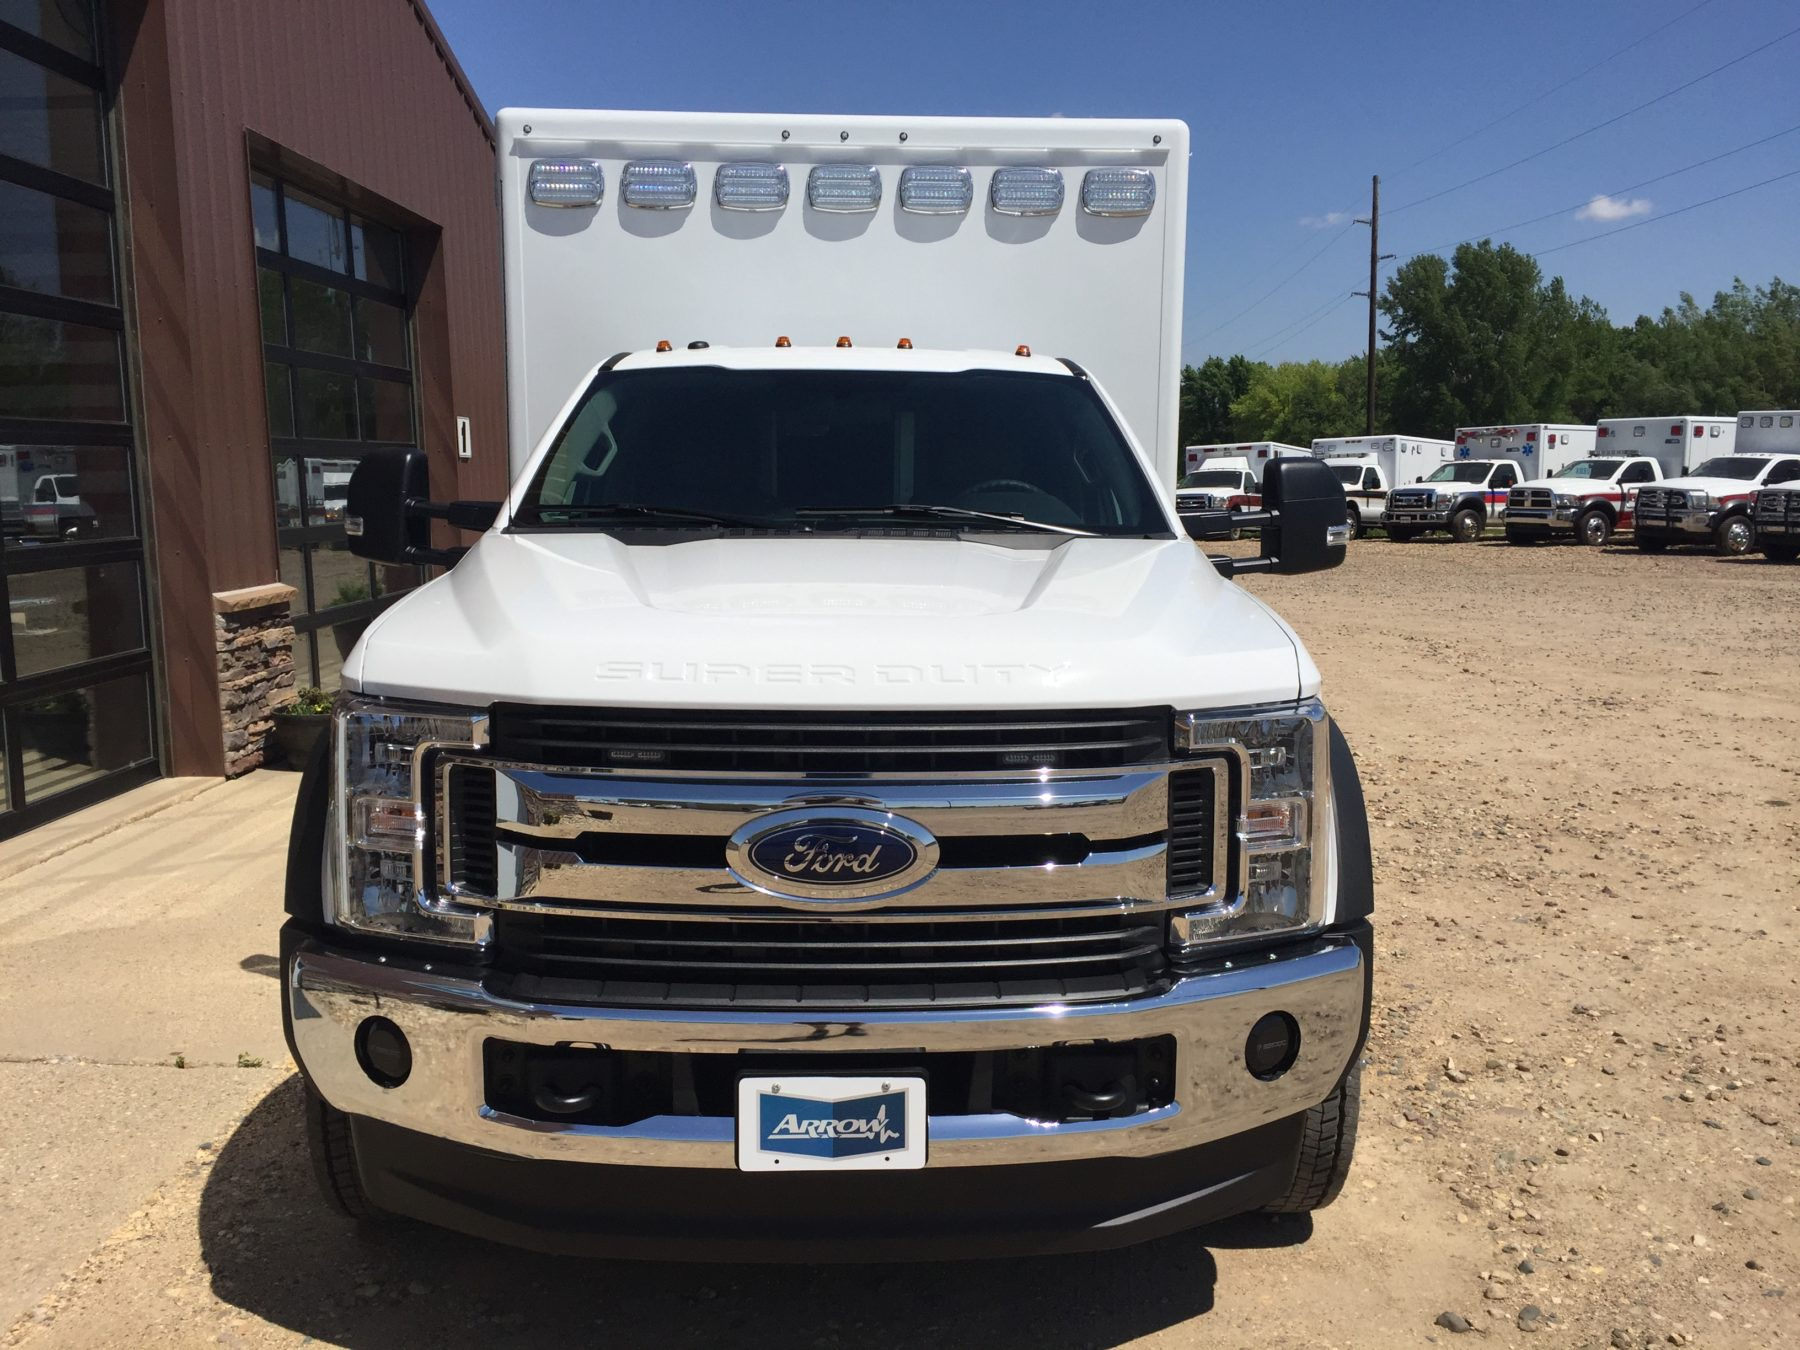 2019 Ford F450 4x4 Heavy Duty Ambulance For Sale – Picture 6